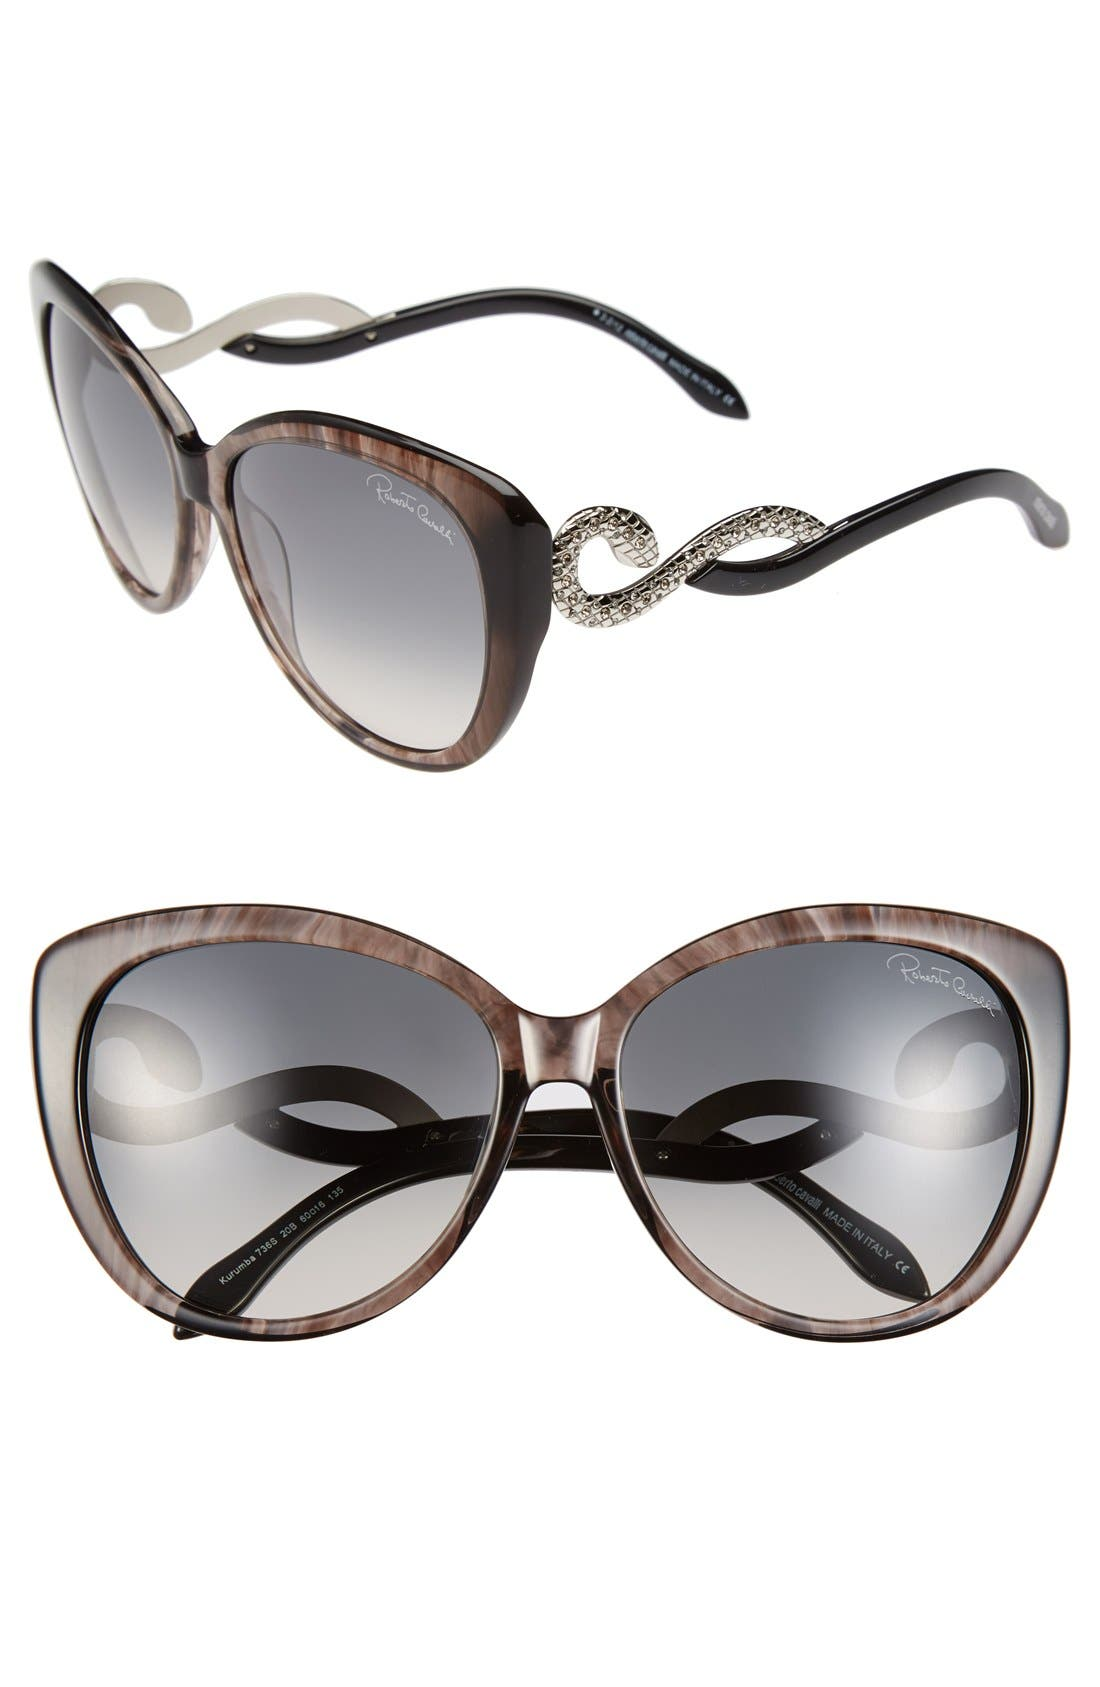 Main Image - Roberto Cavalli 'Kurumba' 60mm Oversized Sunglasses